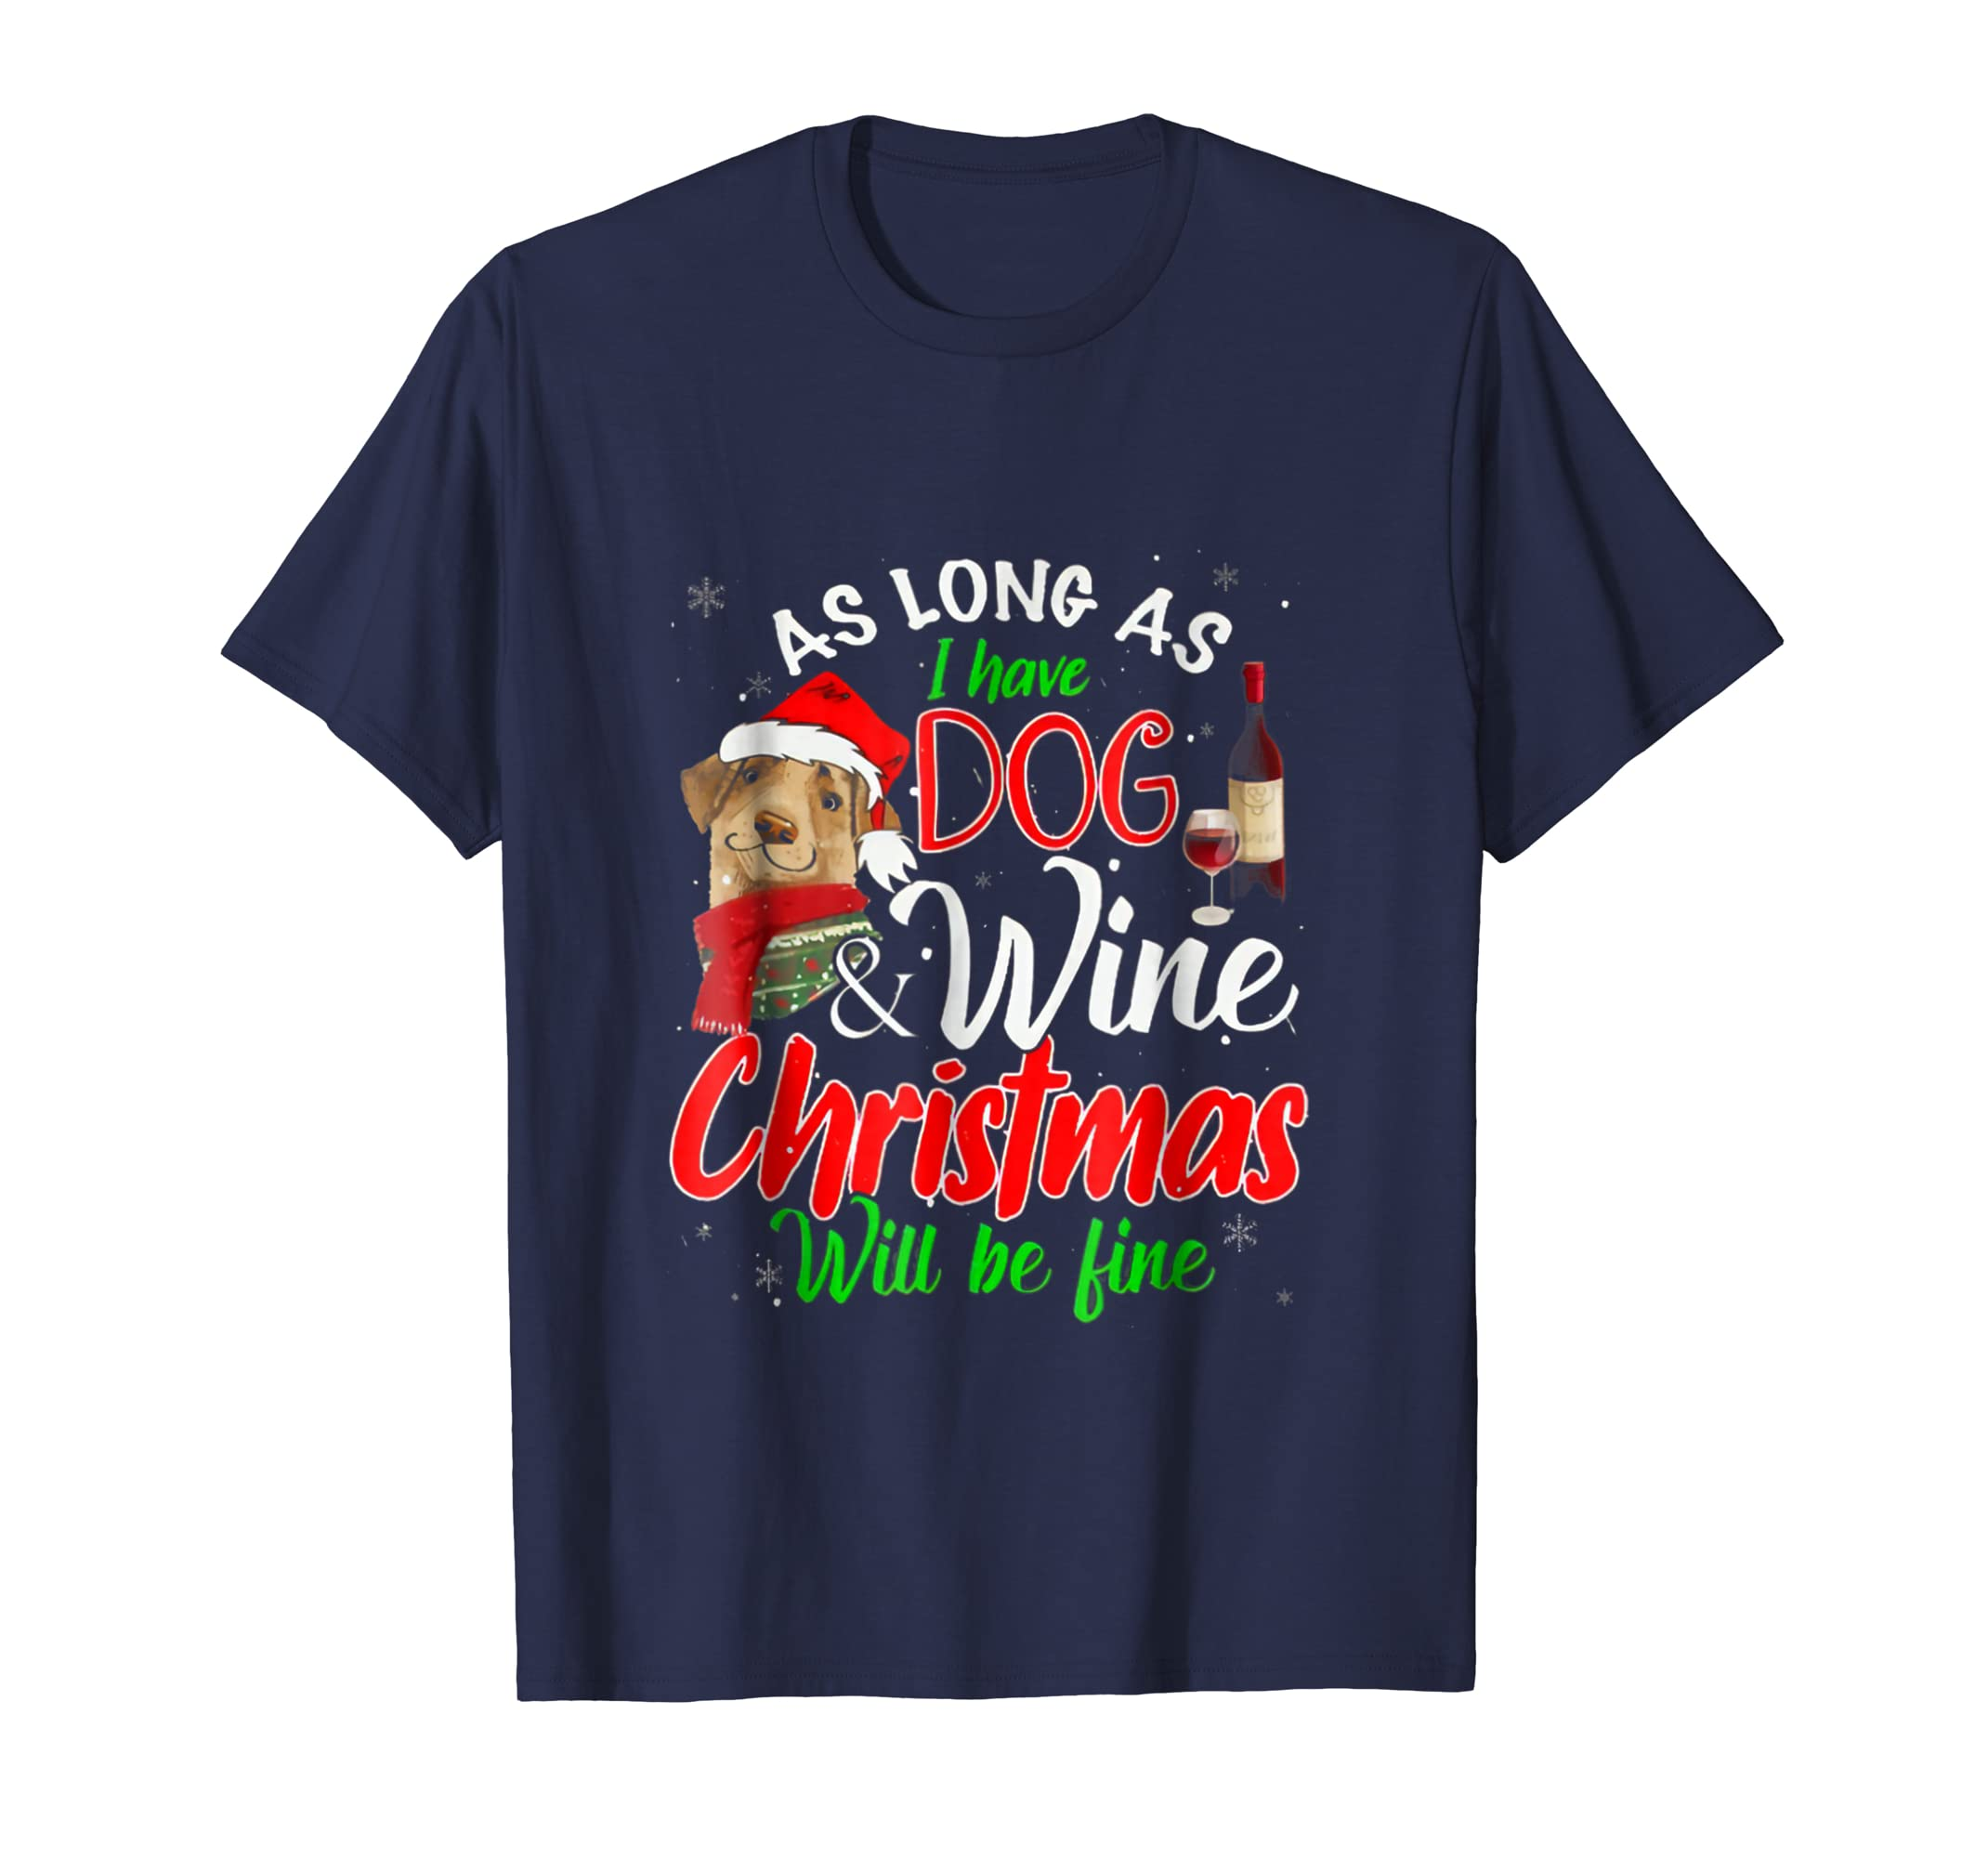 As Long As I have Dog & Wine Christmas will be fine t shirt-azvn